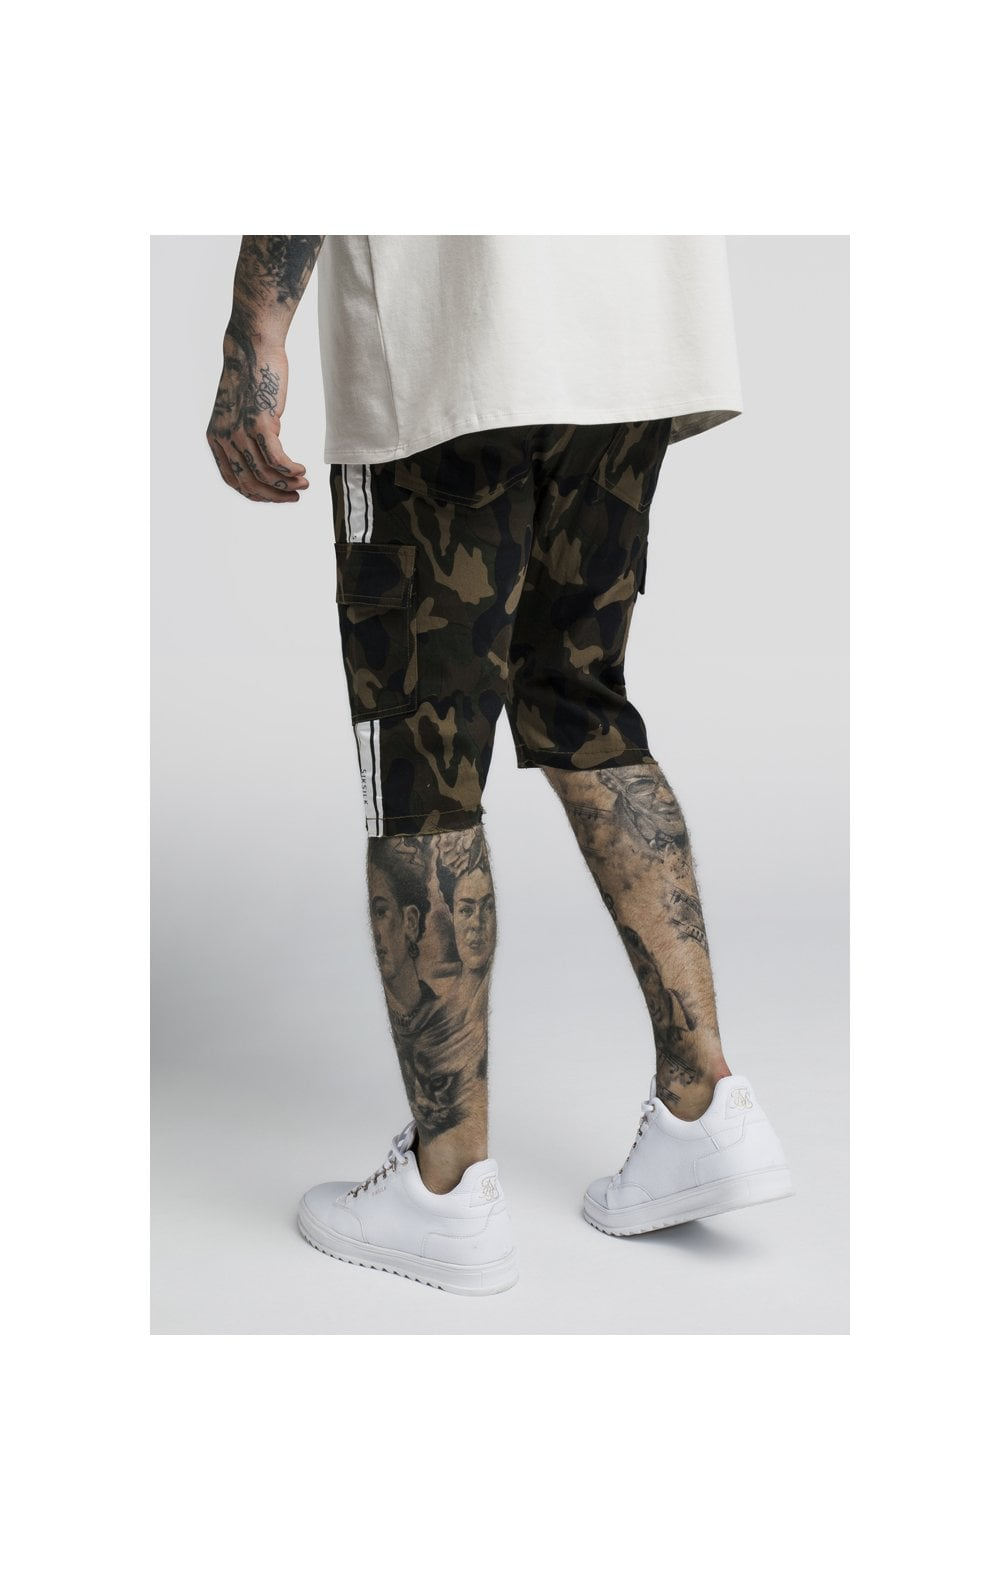 Load image into Gallery viewer, SikSilk Taped Cargo Shorts - Camo (4)